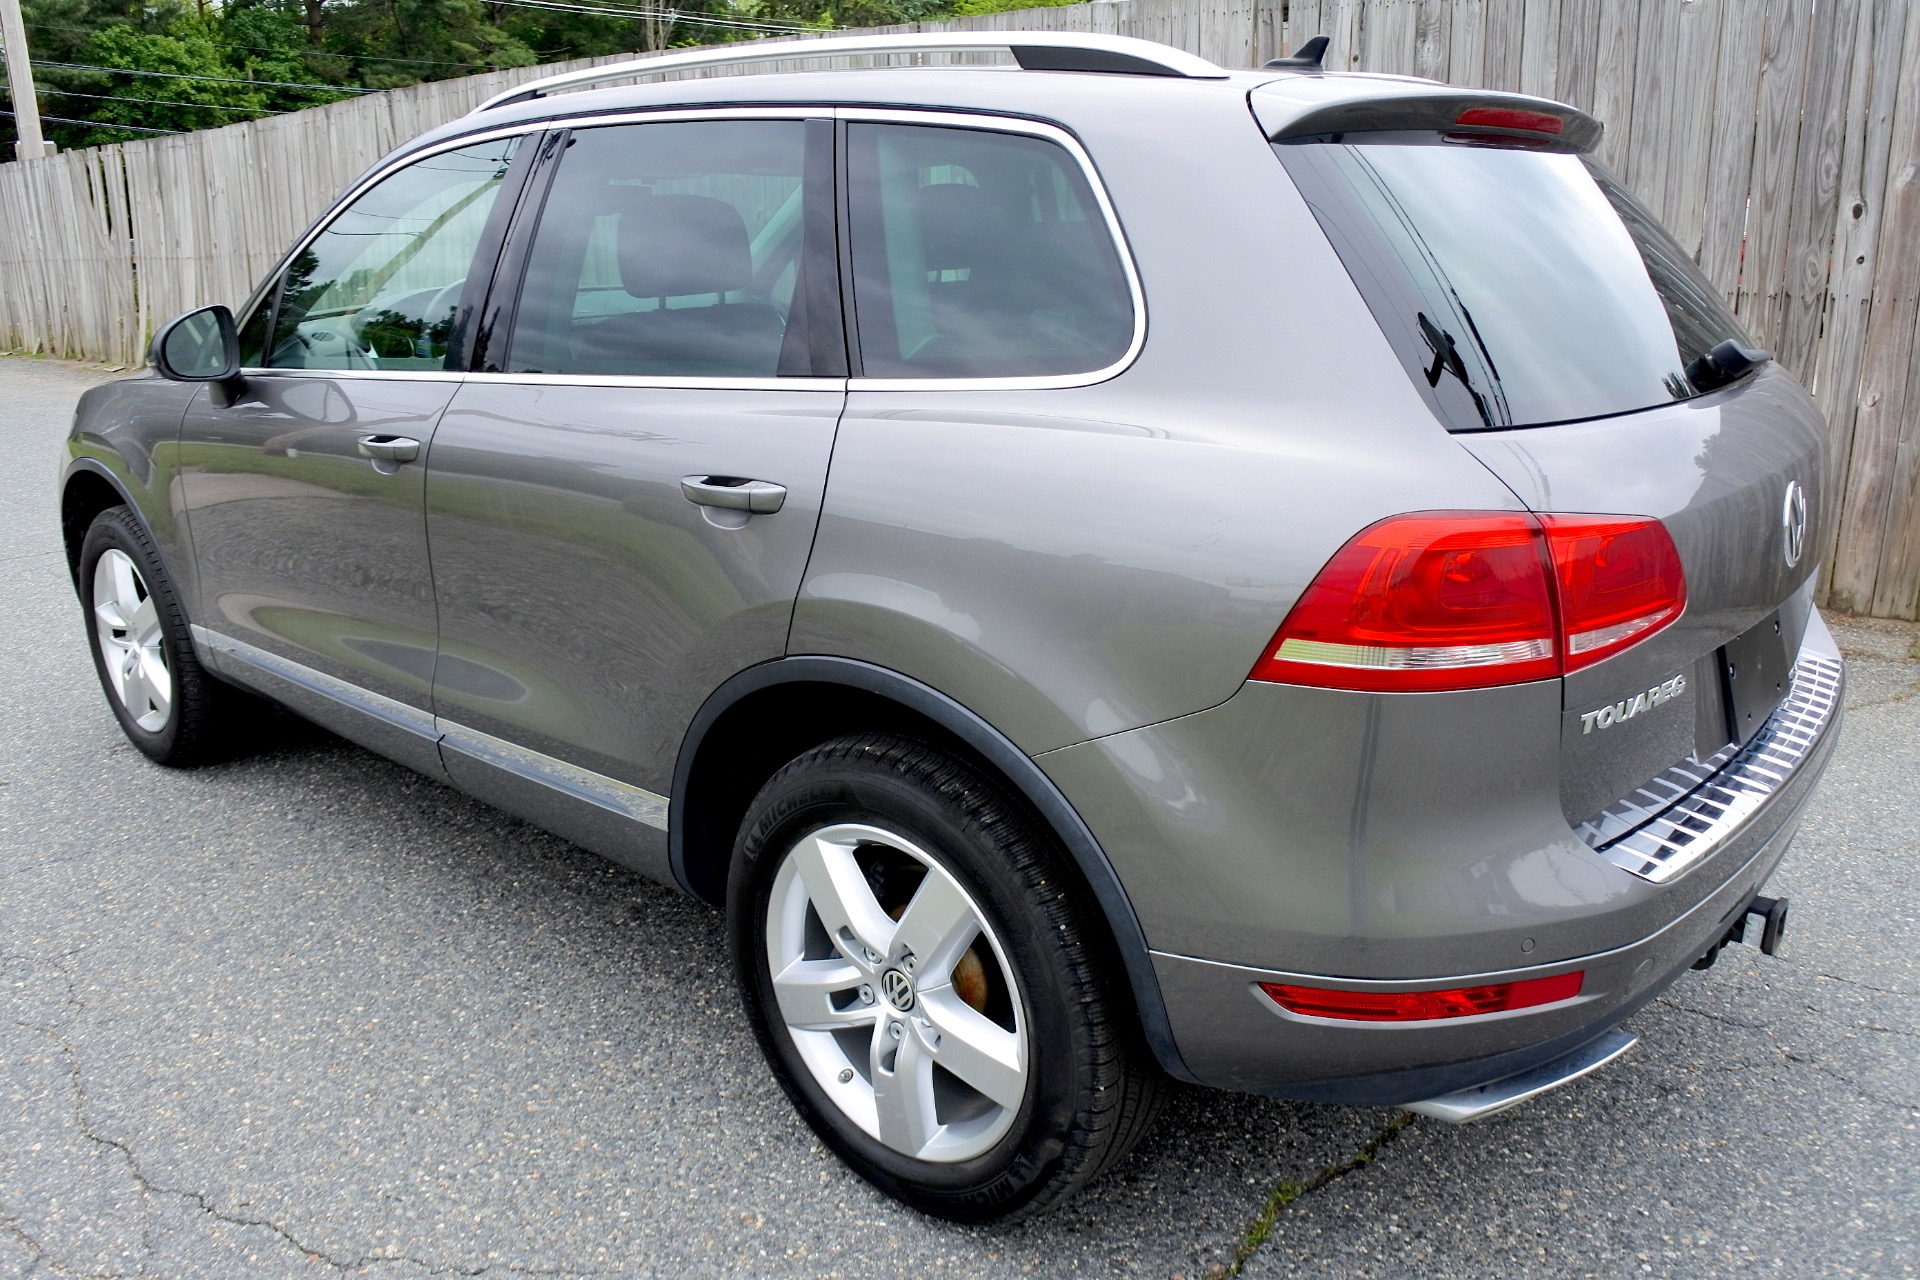 Used 2011 Volkswagen Touareg TDI Lux Used 2011 Volkswagen Touareg TDI Lux for sale  at Metro West Motorcars LLC in Shrewsbury MA 3